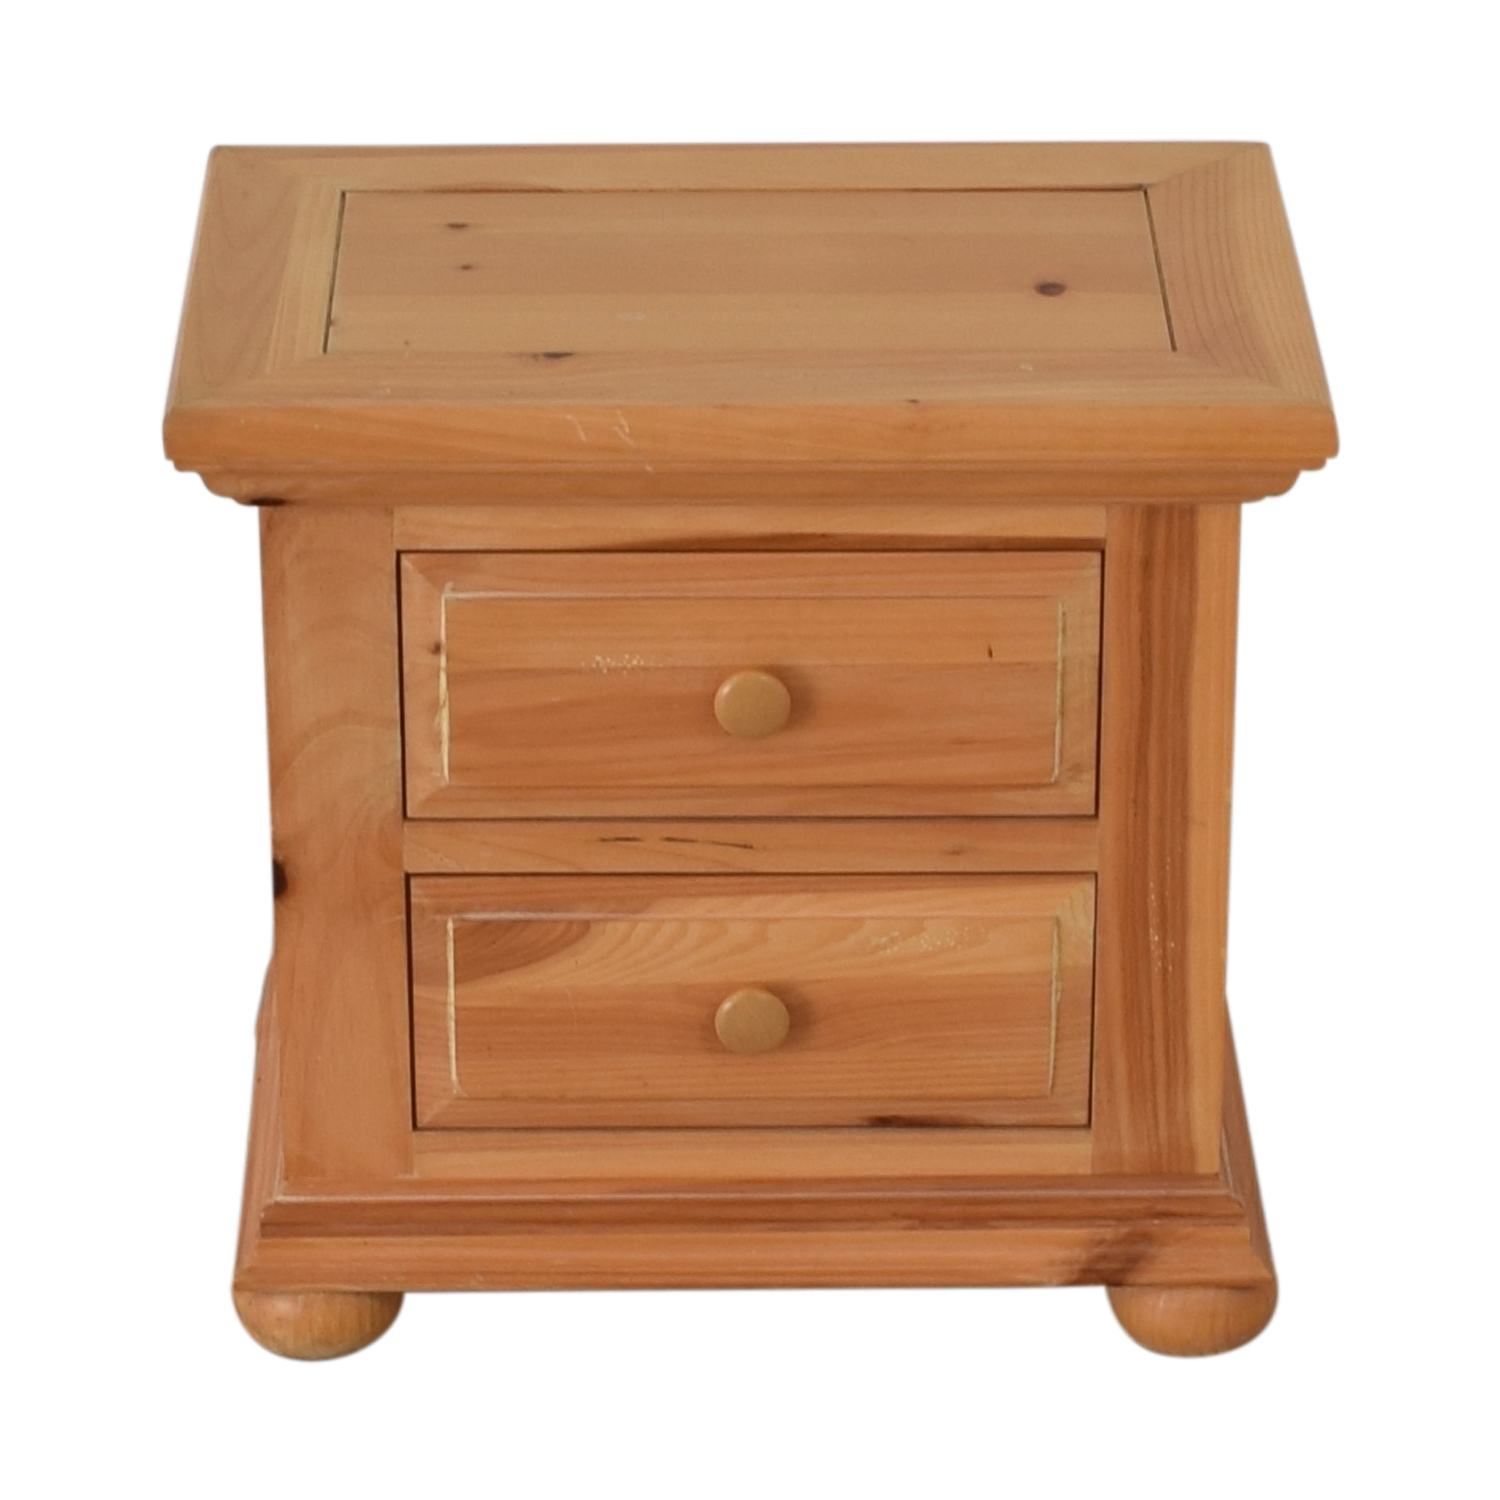 90 Off Broyhill Furniture Broyhill Furniture Natural Two Drawer End Table Tables